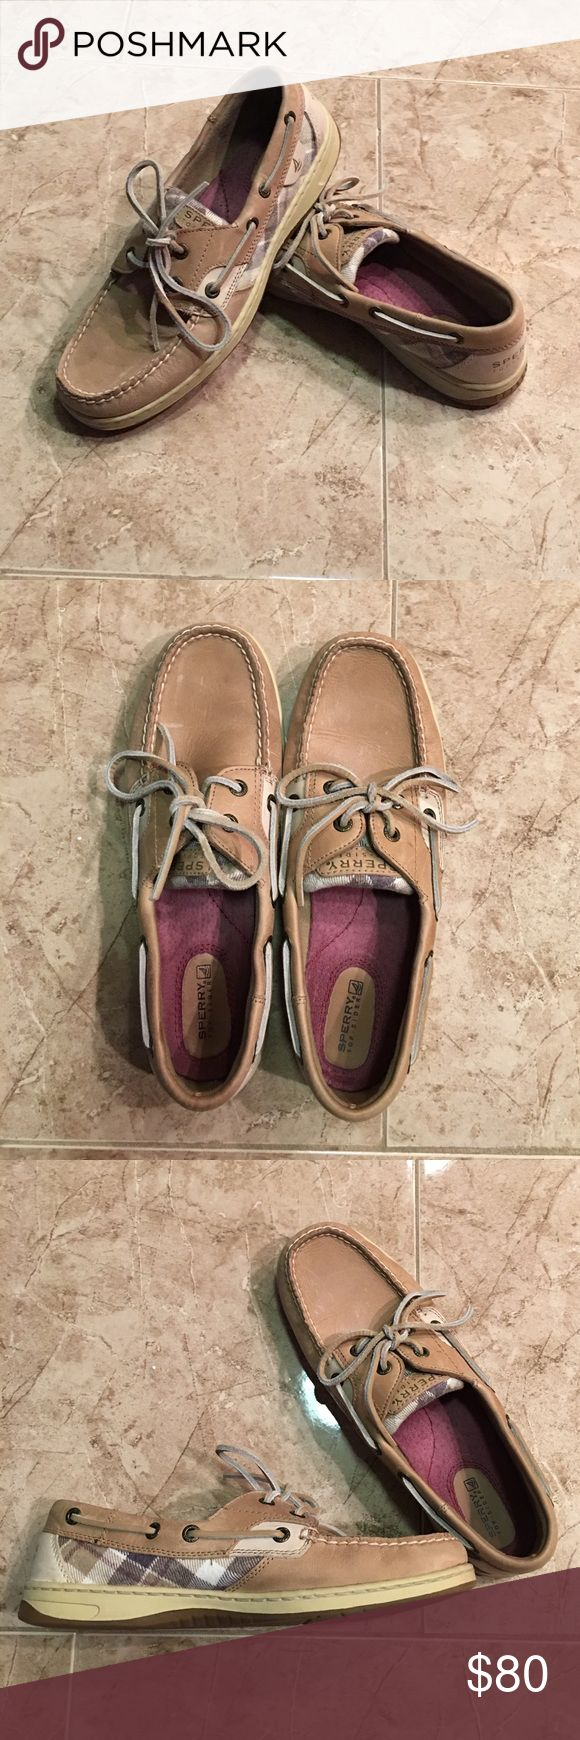 Sperry Boat Shoes! Excellent condition!!! Sperry boat shoes! Cute plaid pattern on the side ! Only worn on vacation, 3 times if that! Great addition to your closet! Leather upper! Sperry Top-Sider Shoes Sandals